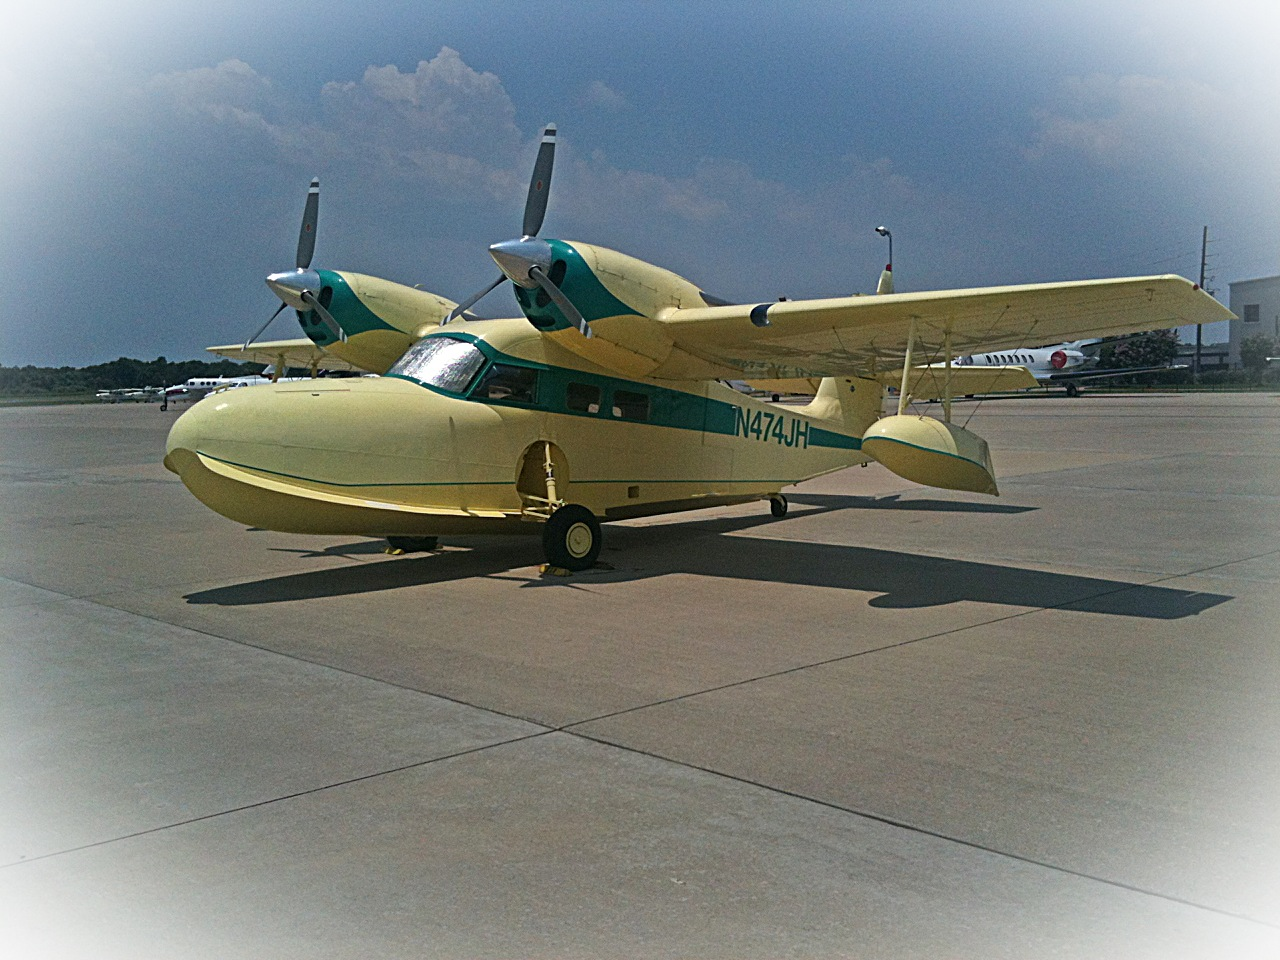 Grumman G-44 Widgeon #3